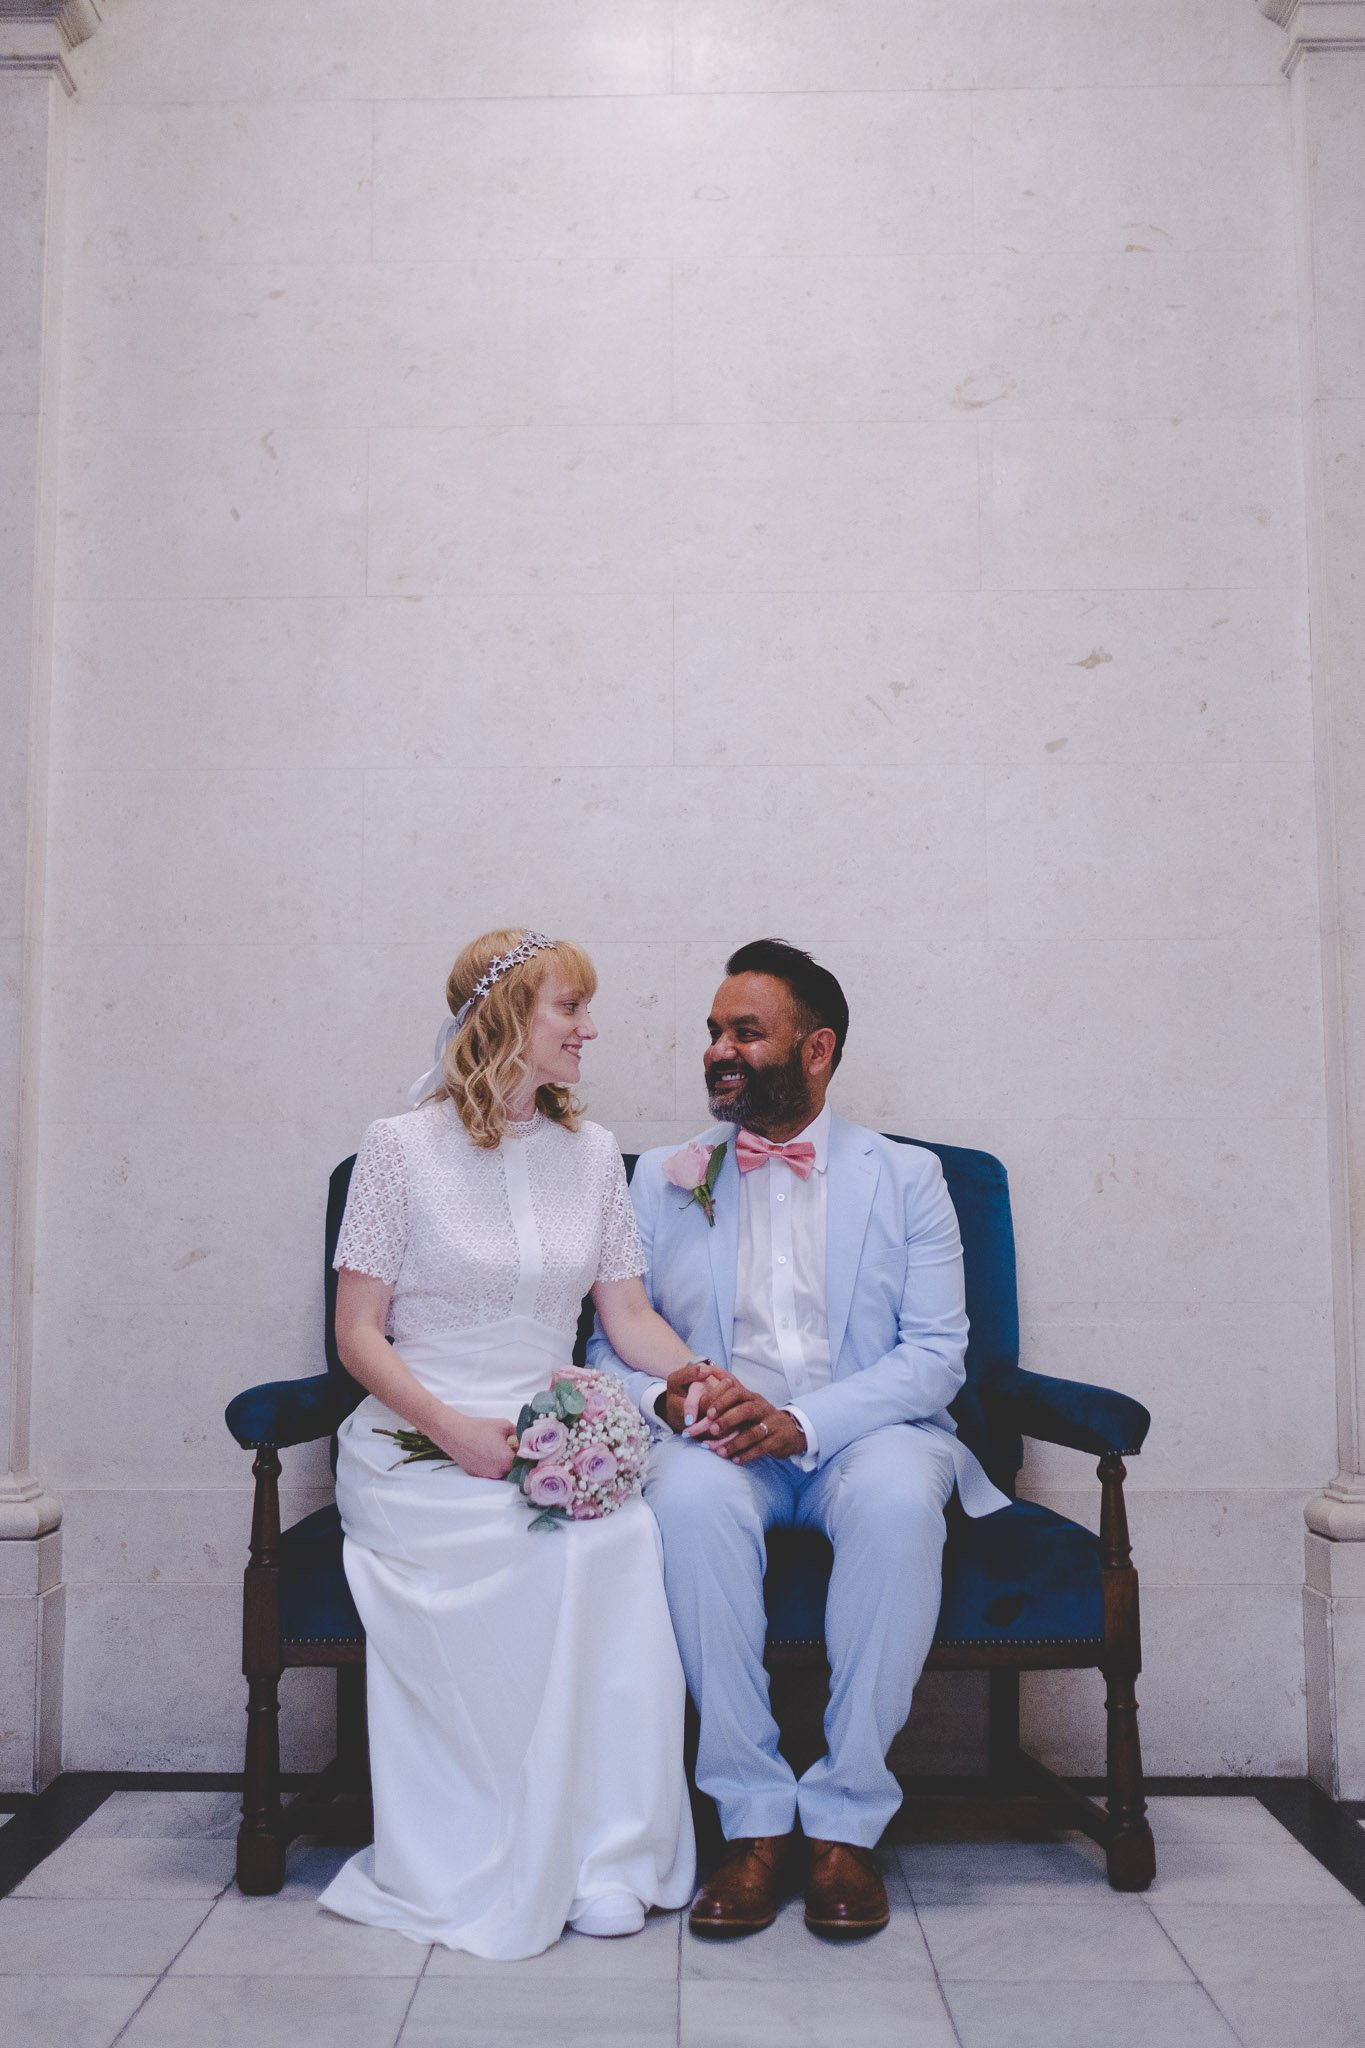 Newly married couple sitting holding hands at Marylebone Town Hall Wedding London. Photography by thatthingyoupluck.